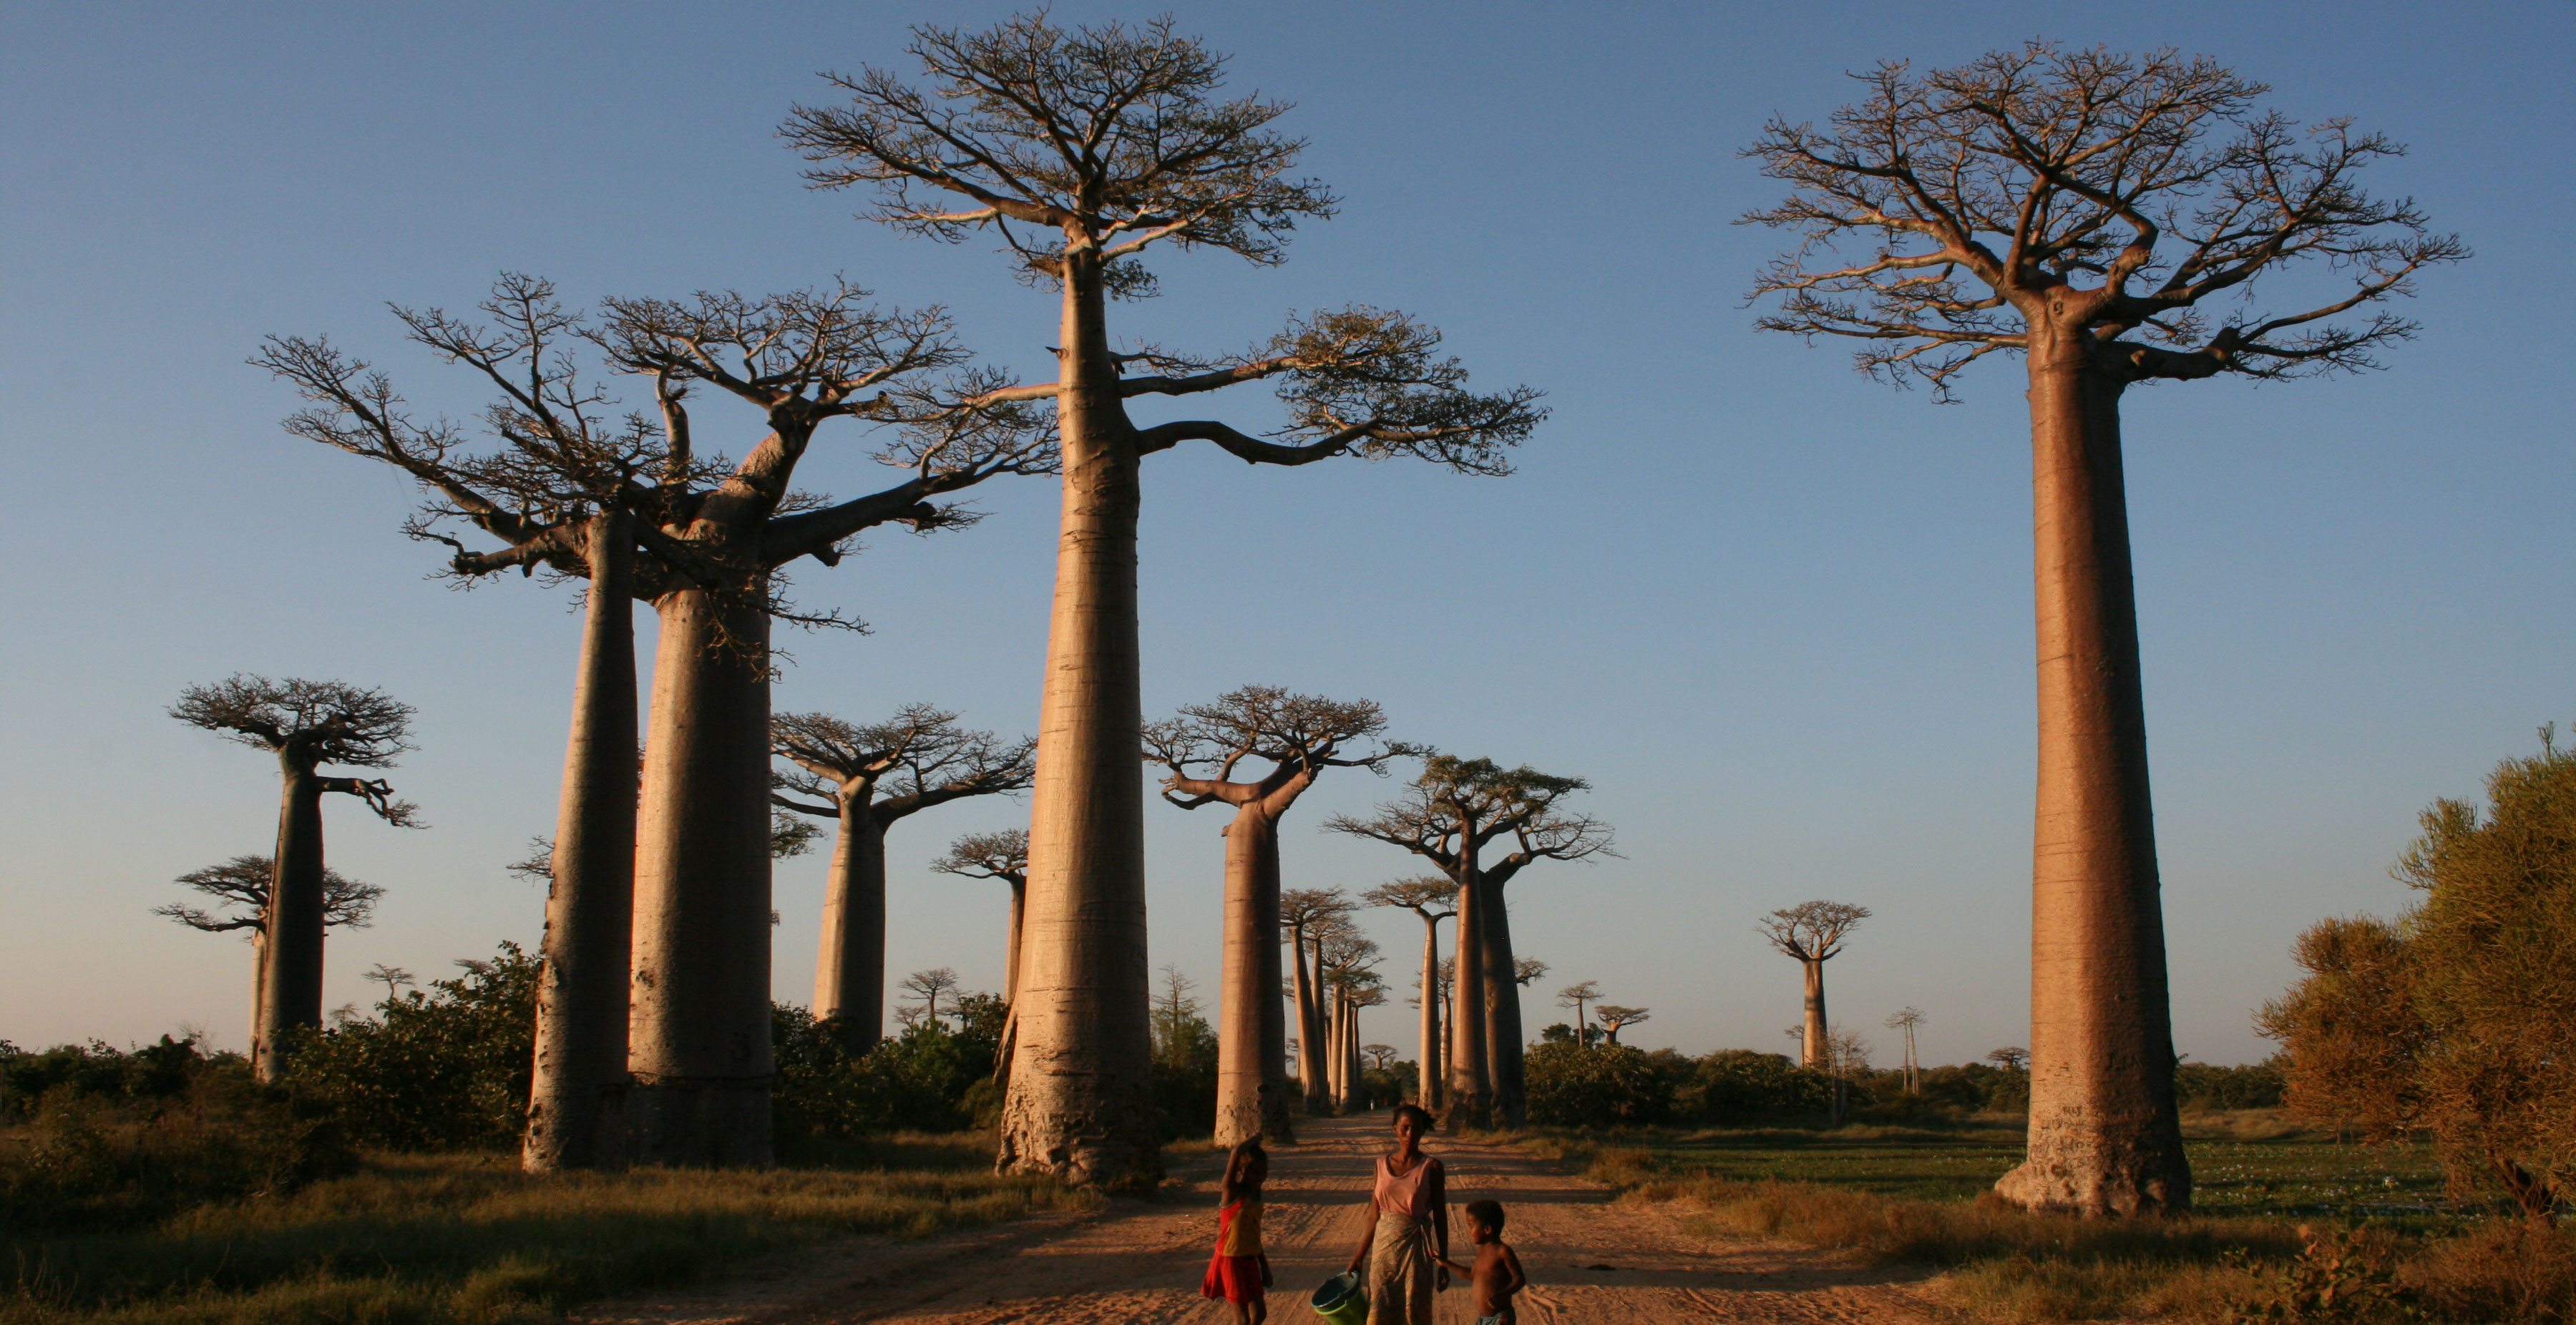 Family in Madagascar walking down a road lined with Baobab trees